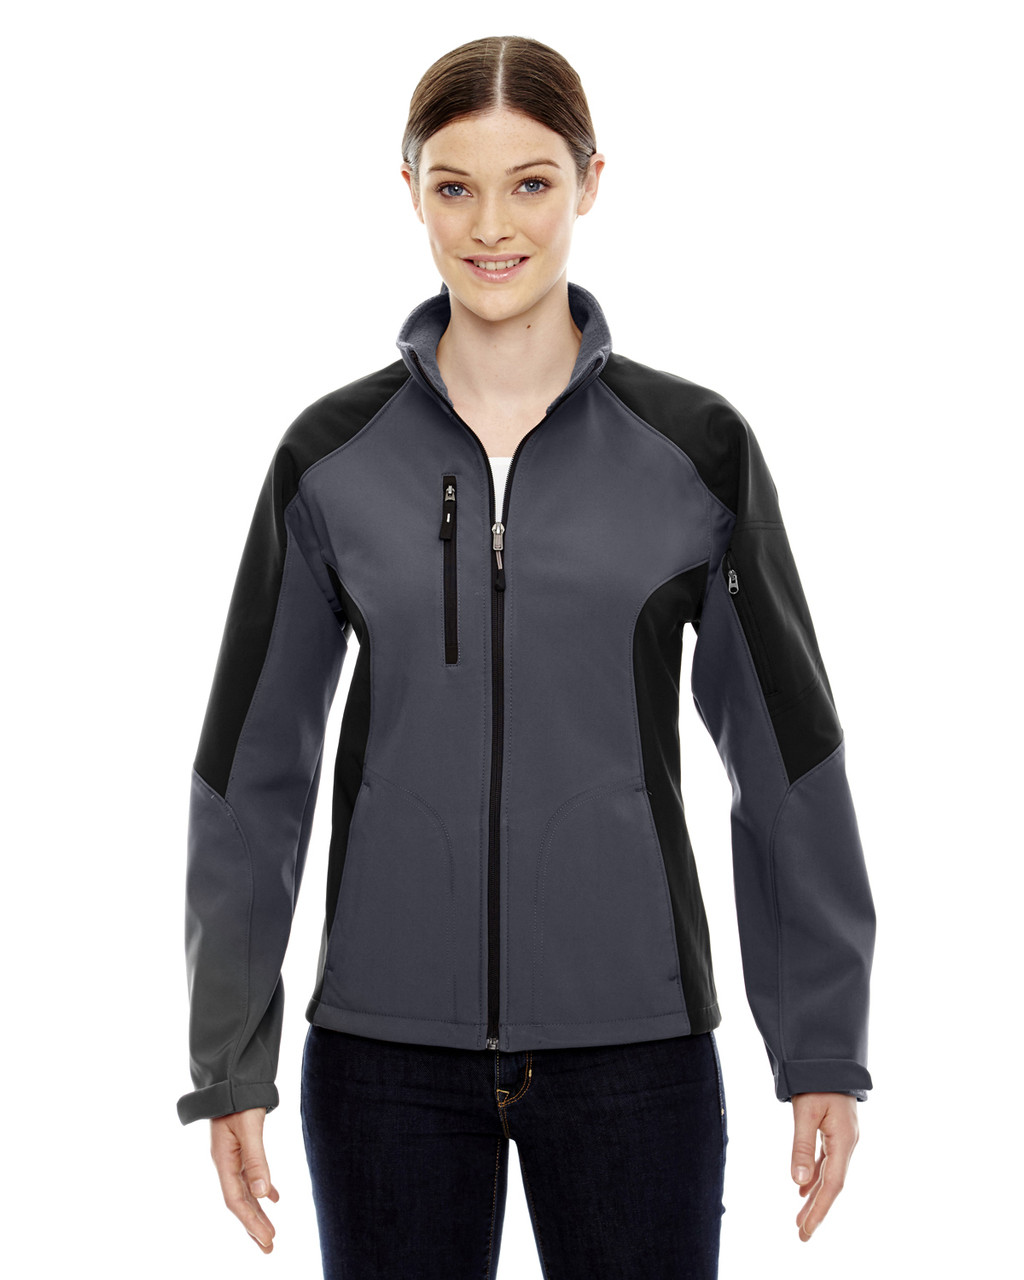 Fossil Grey - 78077 North End Ladies' Colour-Block Soft Shell Jacket   Blankclothing.ca